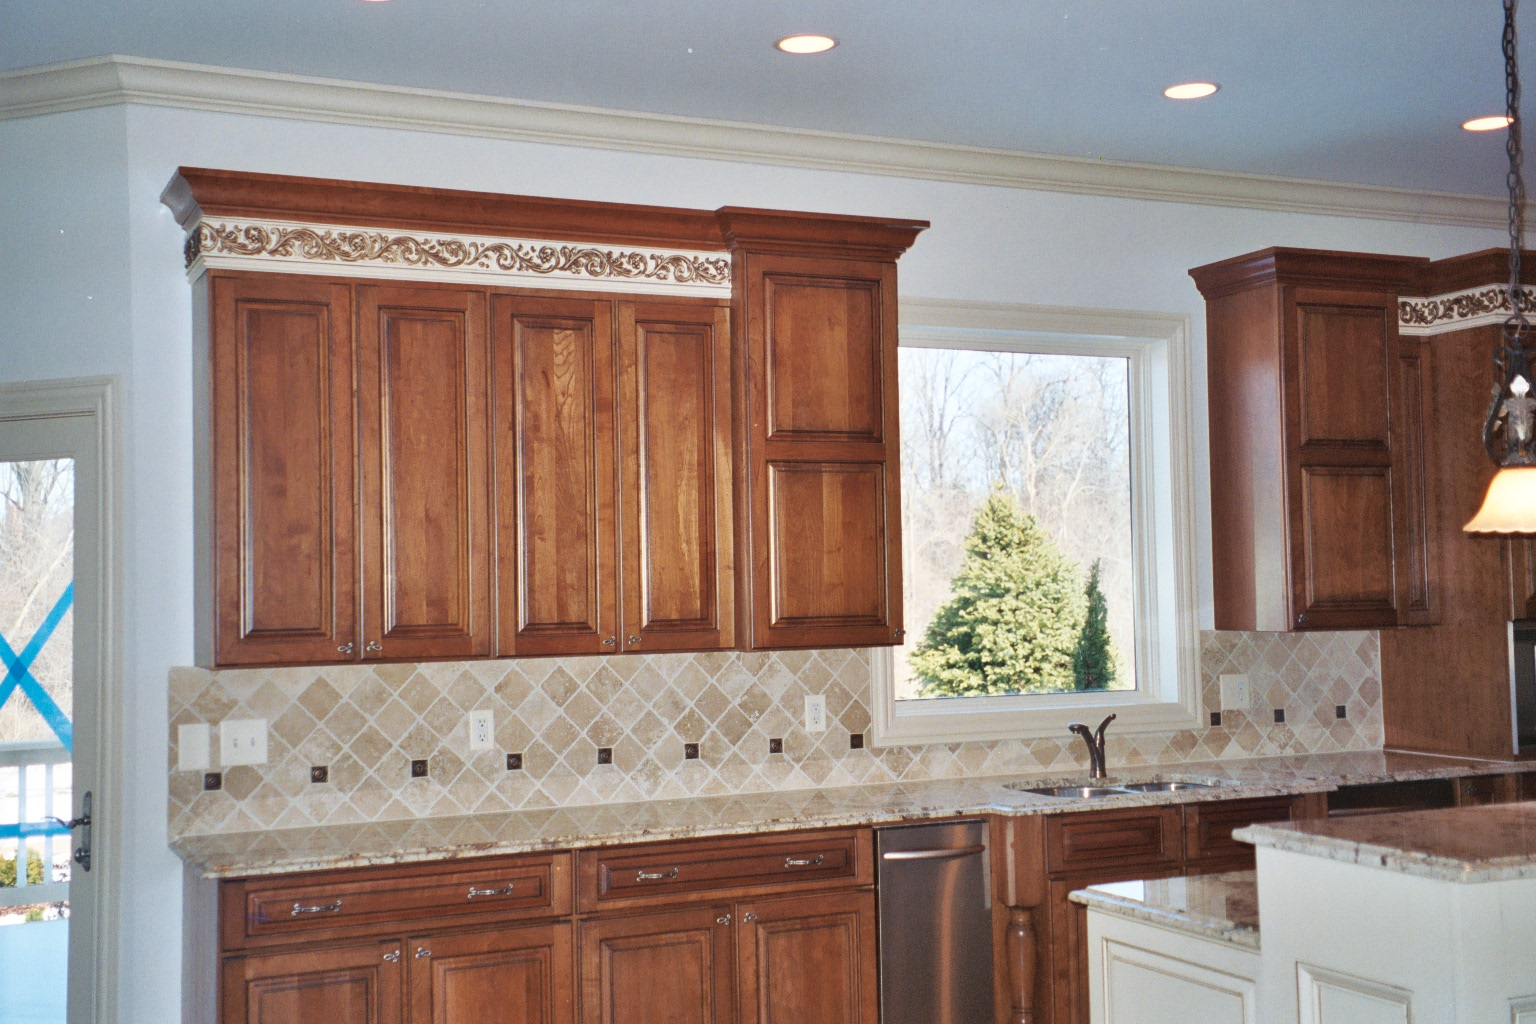 - Where To End Kitchen Backsplash Tiles - BELK Tile ~ Adding Style